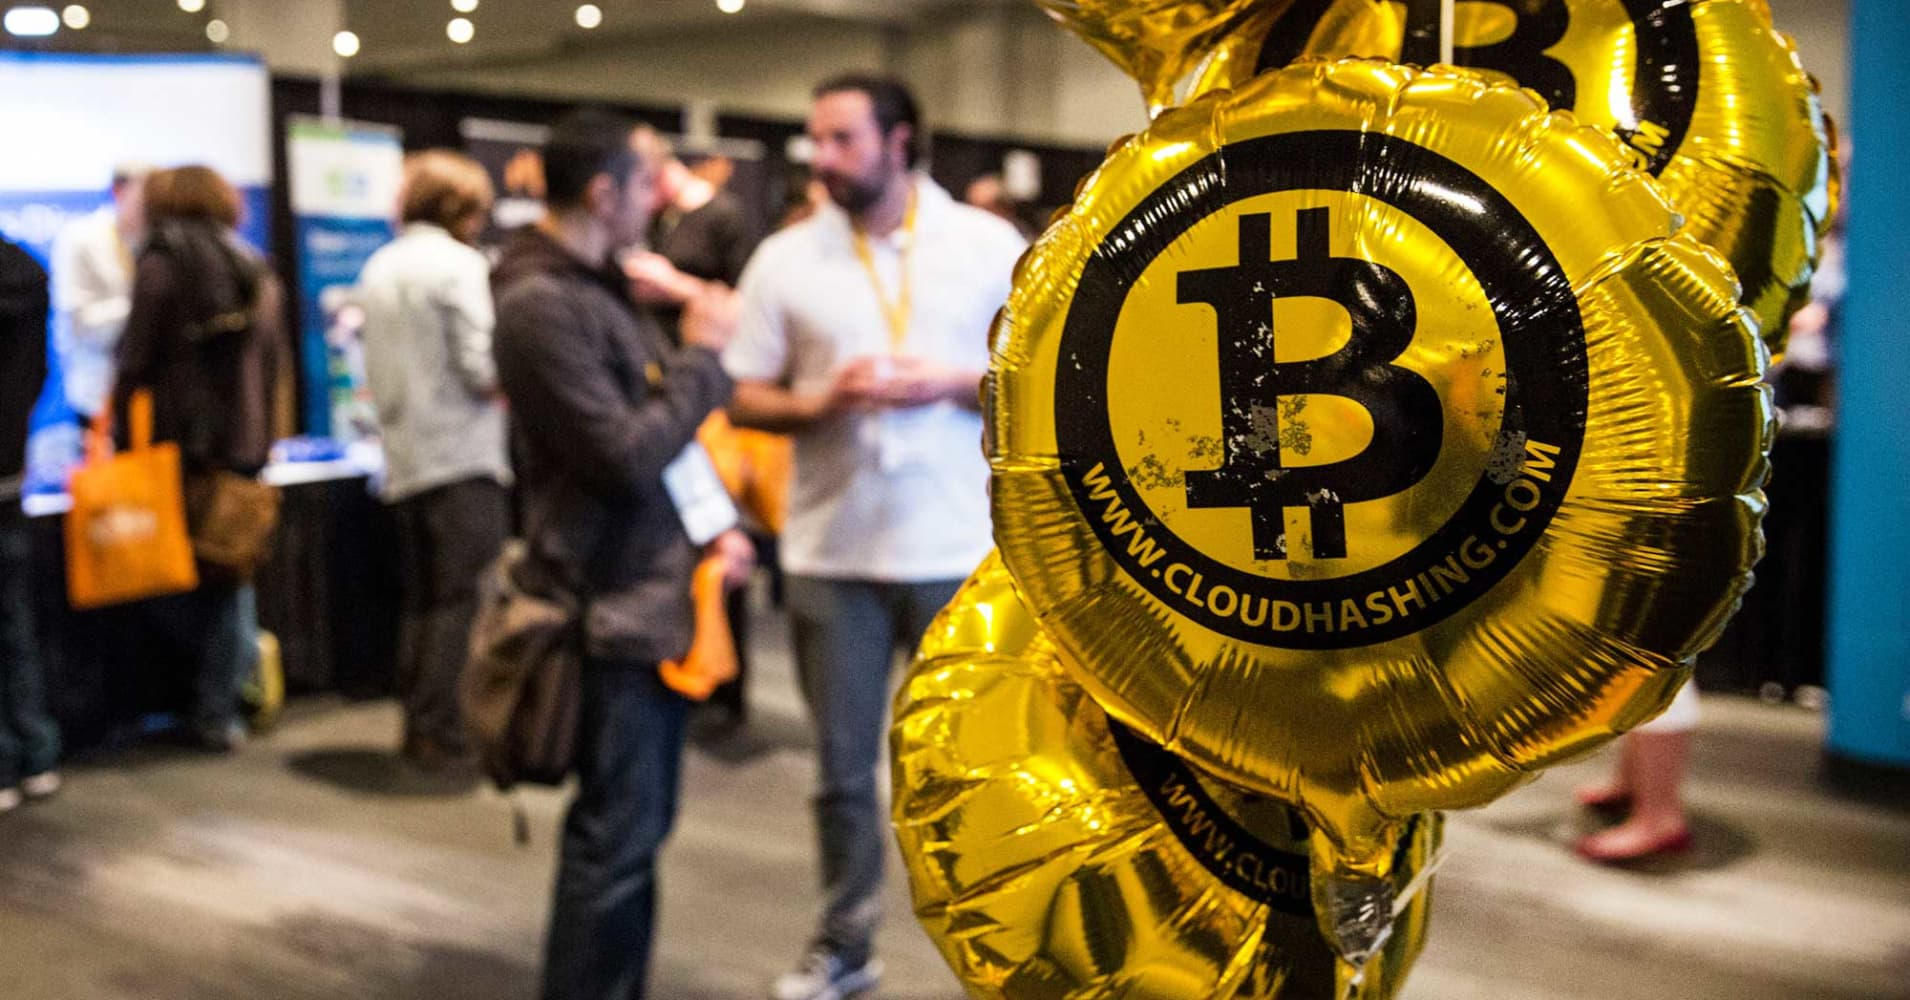 Bitcoin is finally buying into US real estate - CNBC